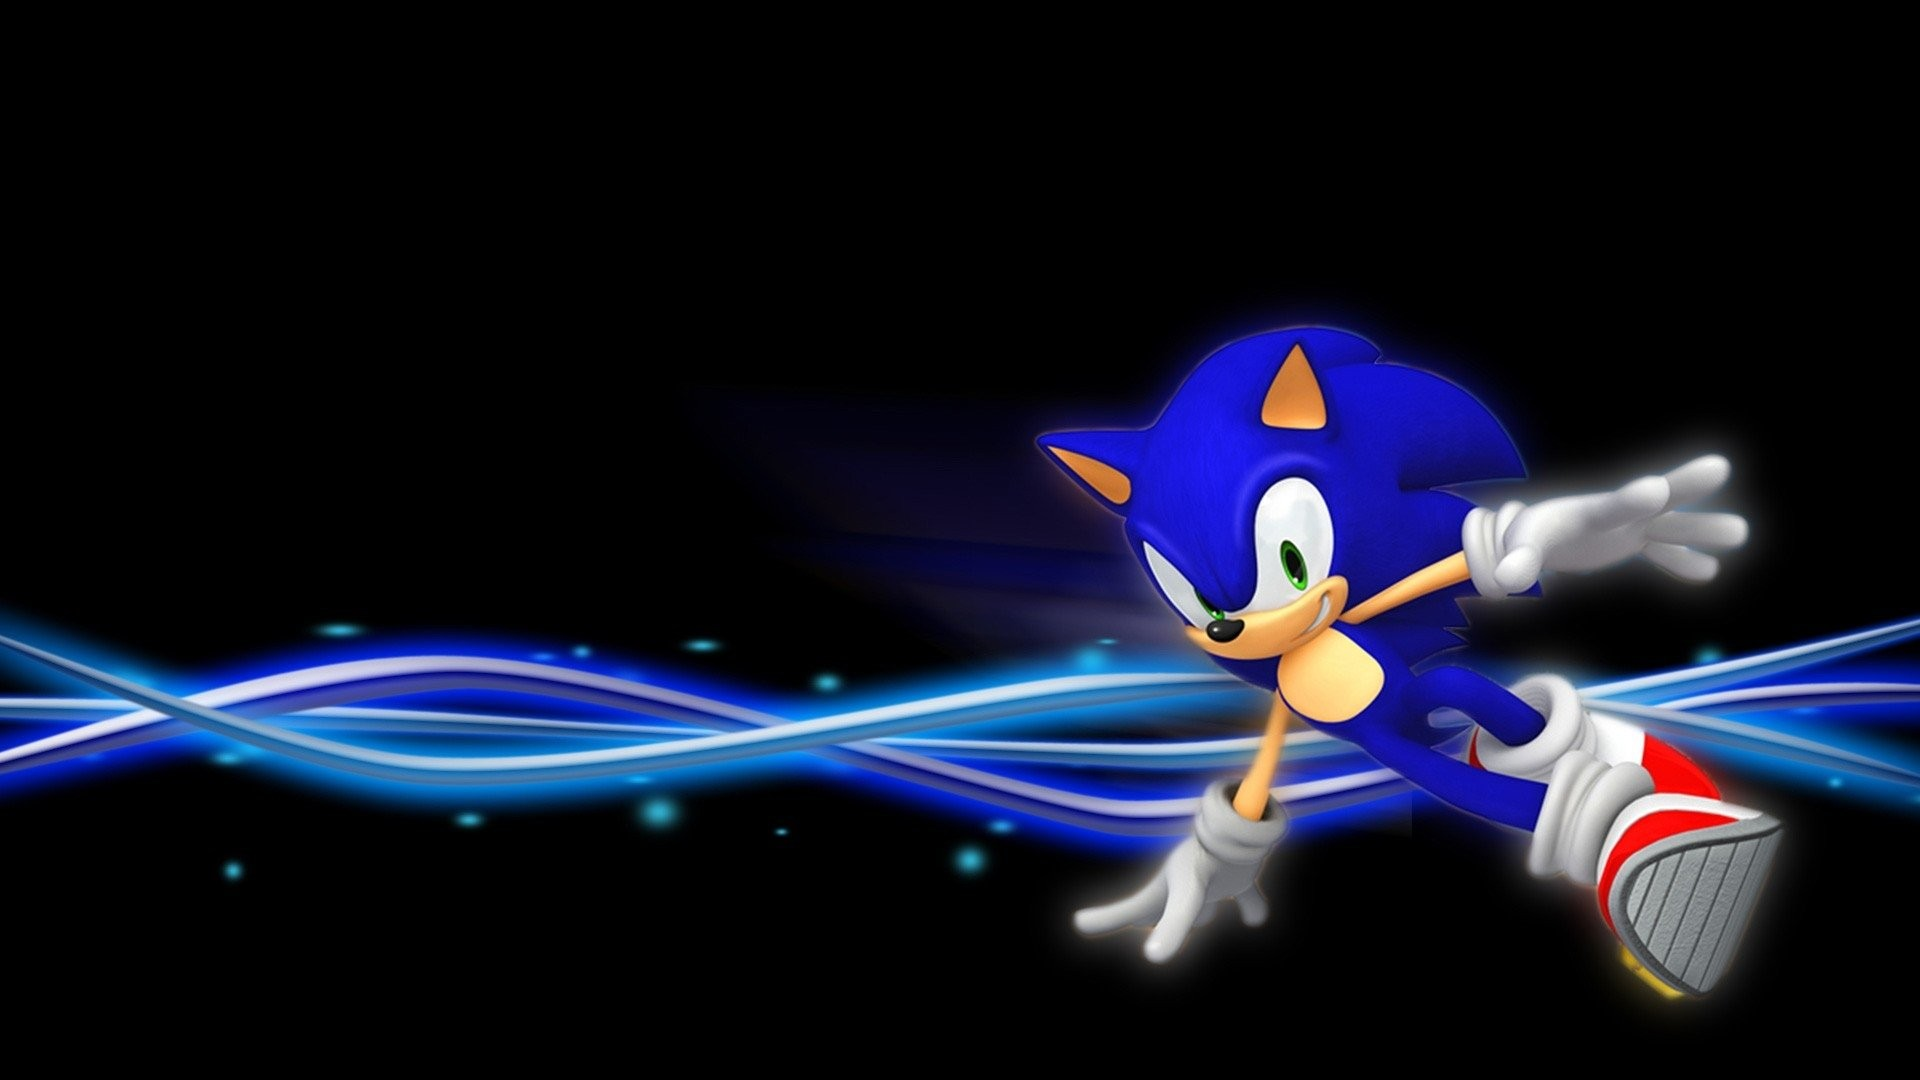 Sonic The Hedgehog Wallpaper Download Free Awesome Full Hd Wallpapers For Desktop And Mobile Devices In Any Resolution Desktop Android Iphone Ipad 1920x1080 1280x1024 800x600 1680x1050 Etc Wallpapertag